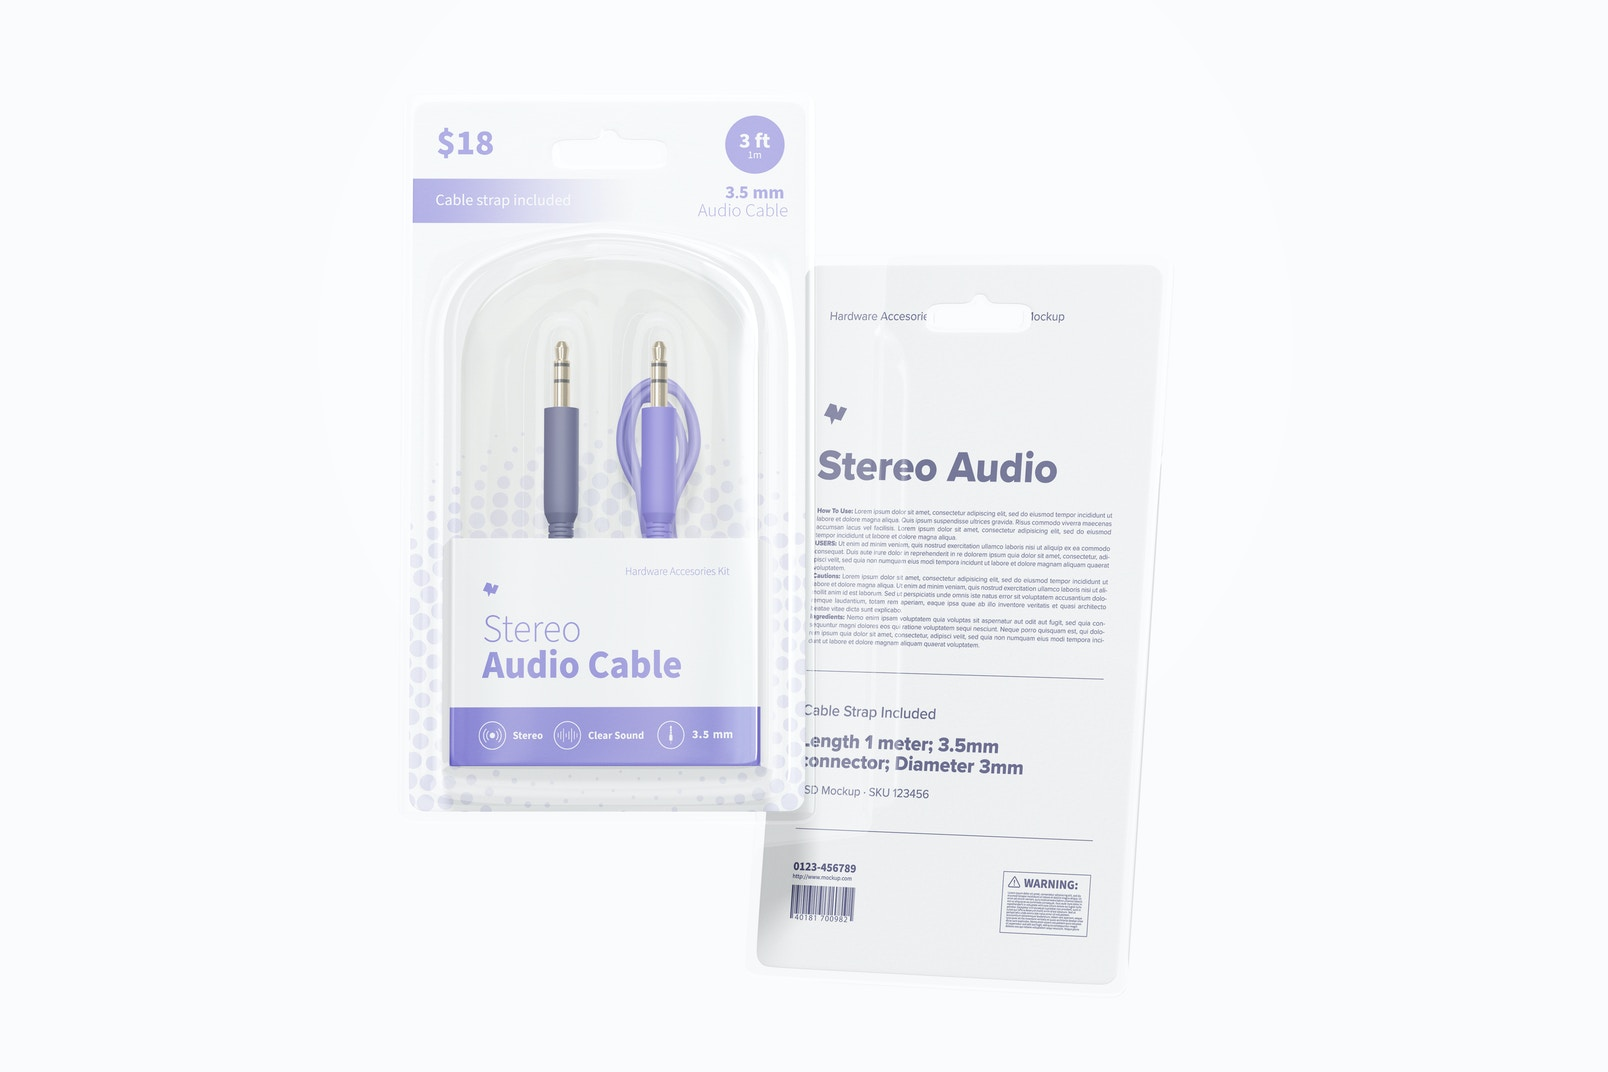 Stereo Audio Cable Mockup, Floating